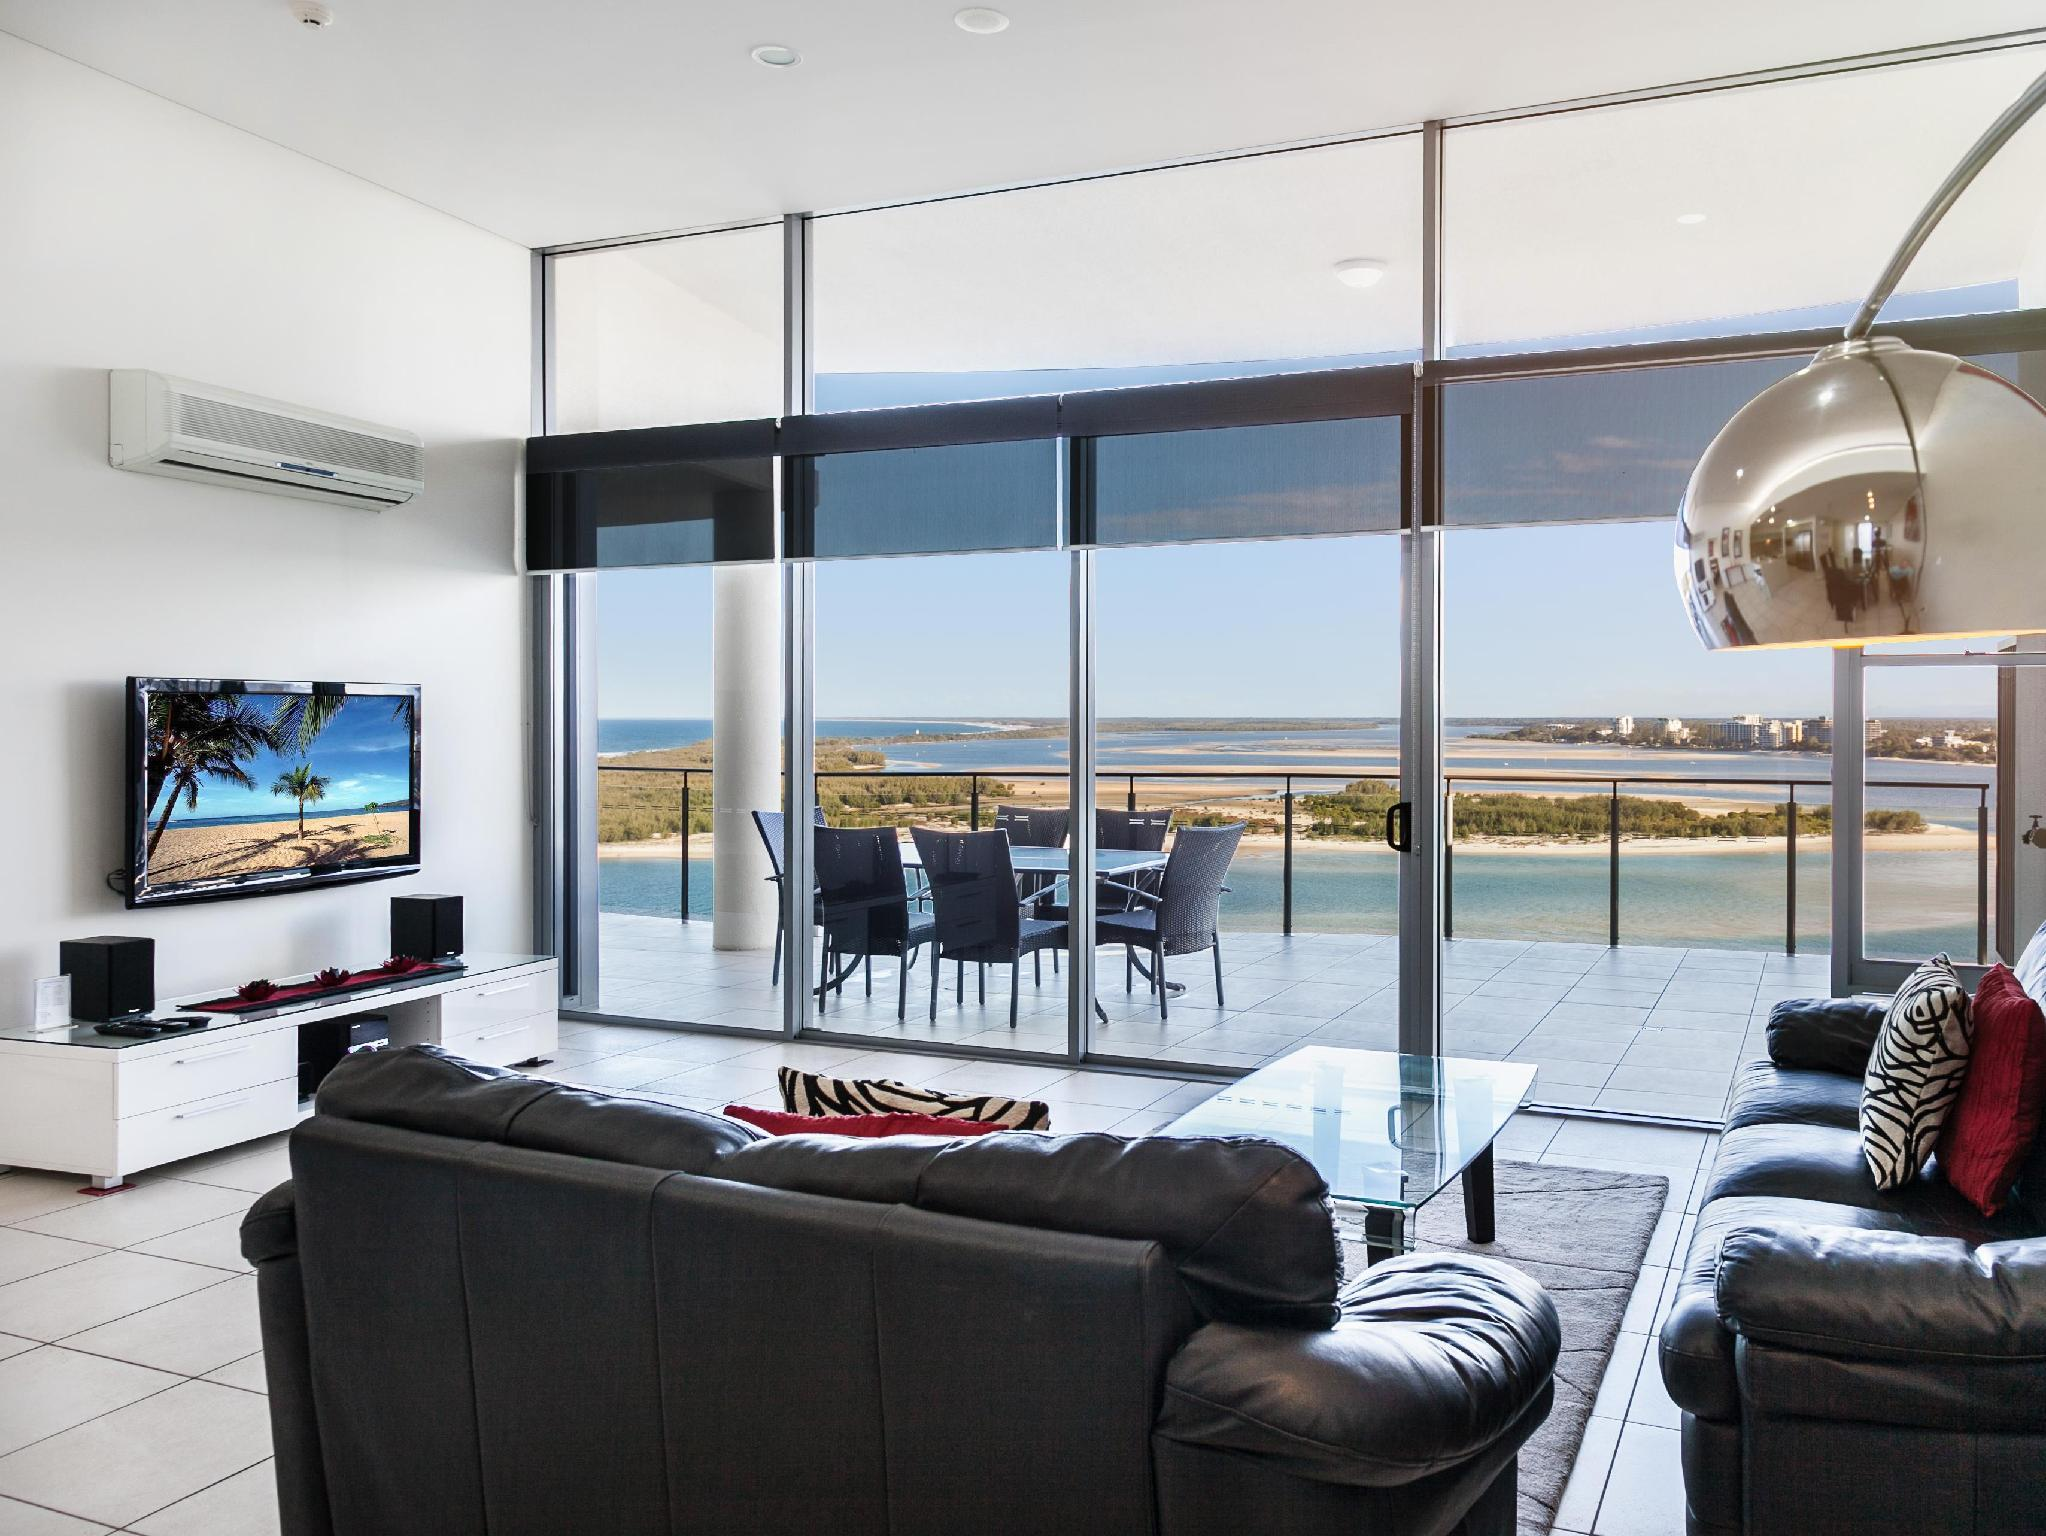 3-Bedroom Penthouse